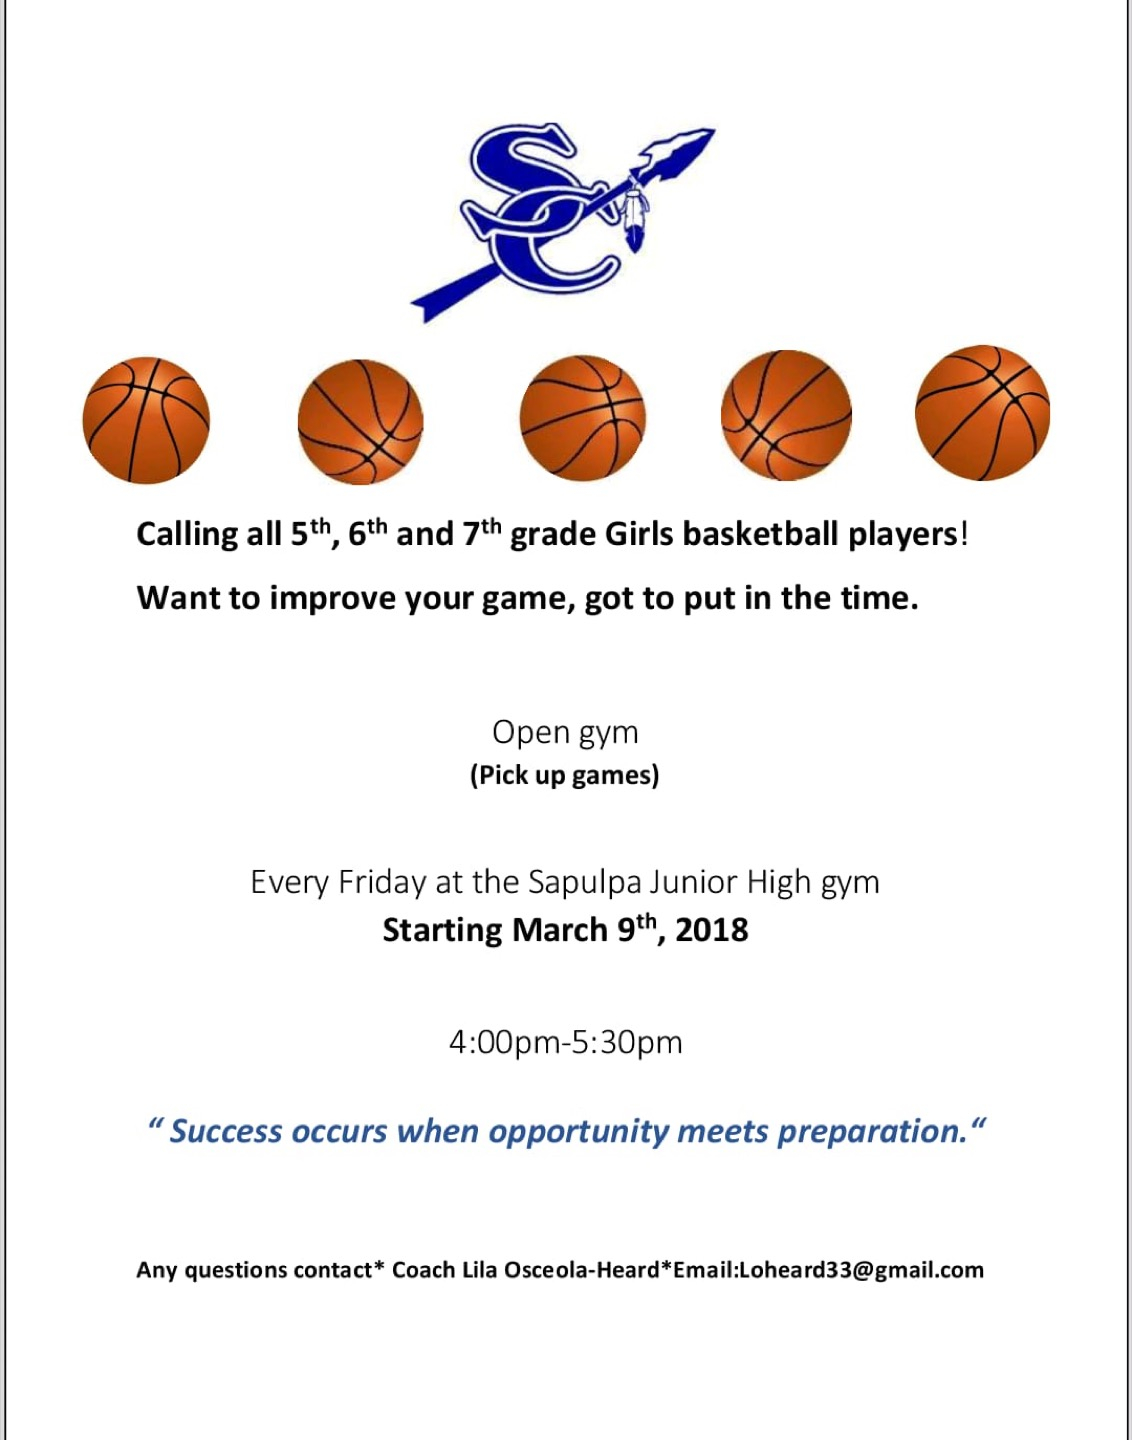 free-pickup-games-in-junior-high